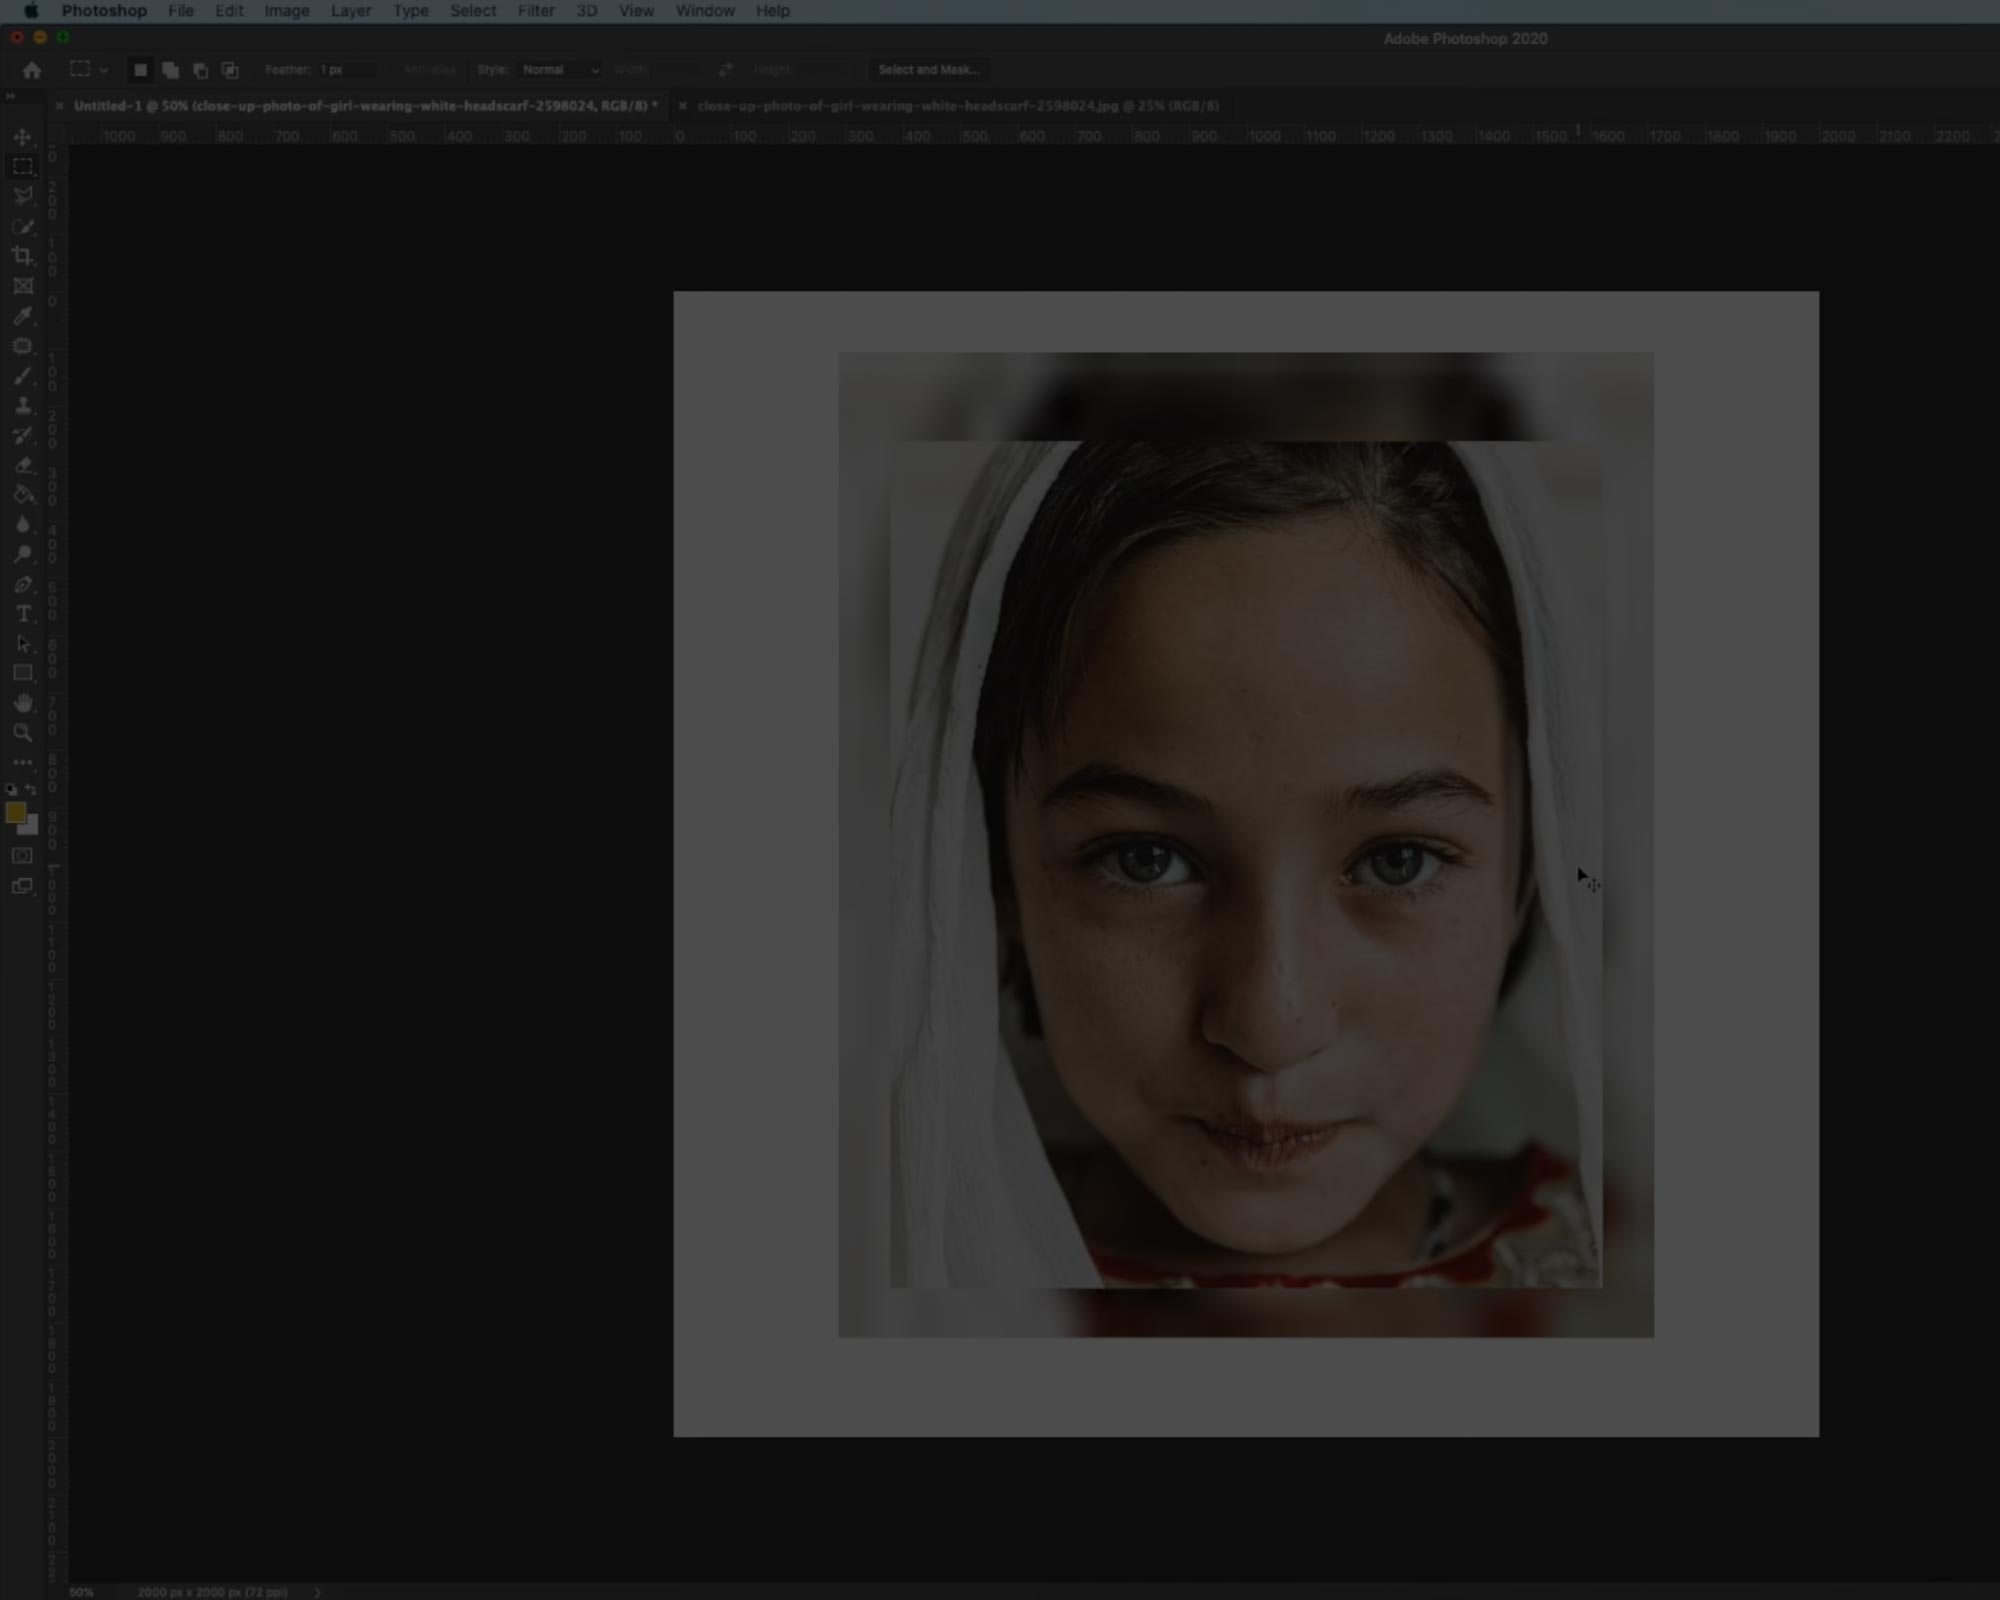 How to resize images without losing quality in Photoshop!